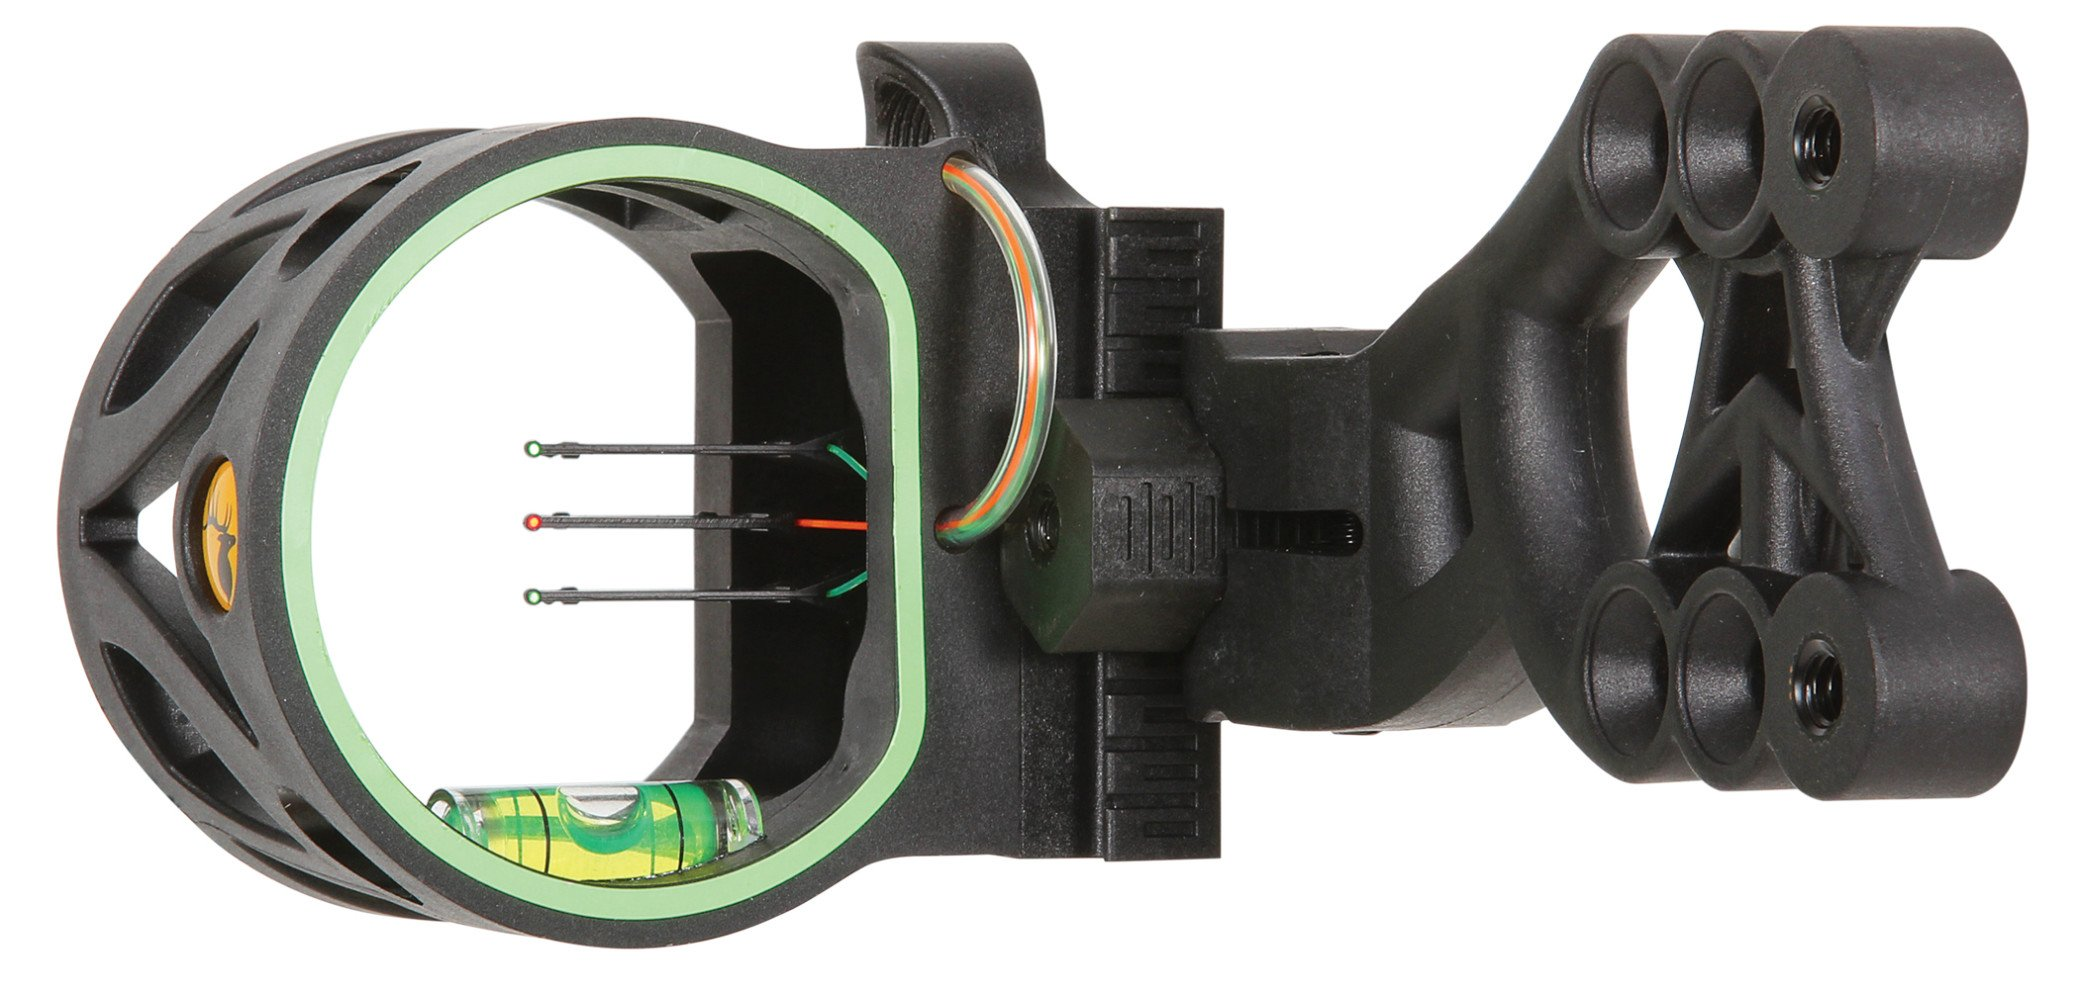 Trophy Ridge Mist Sight with Green Hood Accent for Quicker Sight Acquisition and Reversible Mount Design for Use with Left and Right-hand Bows